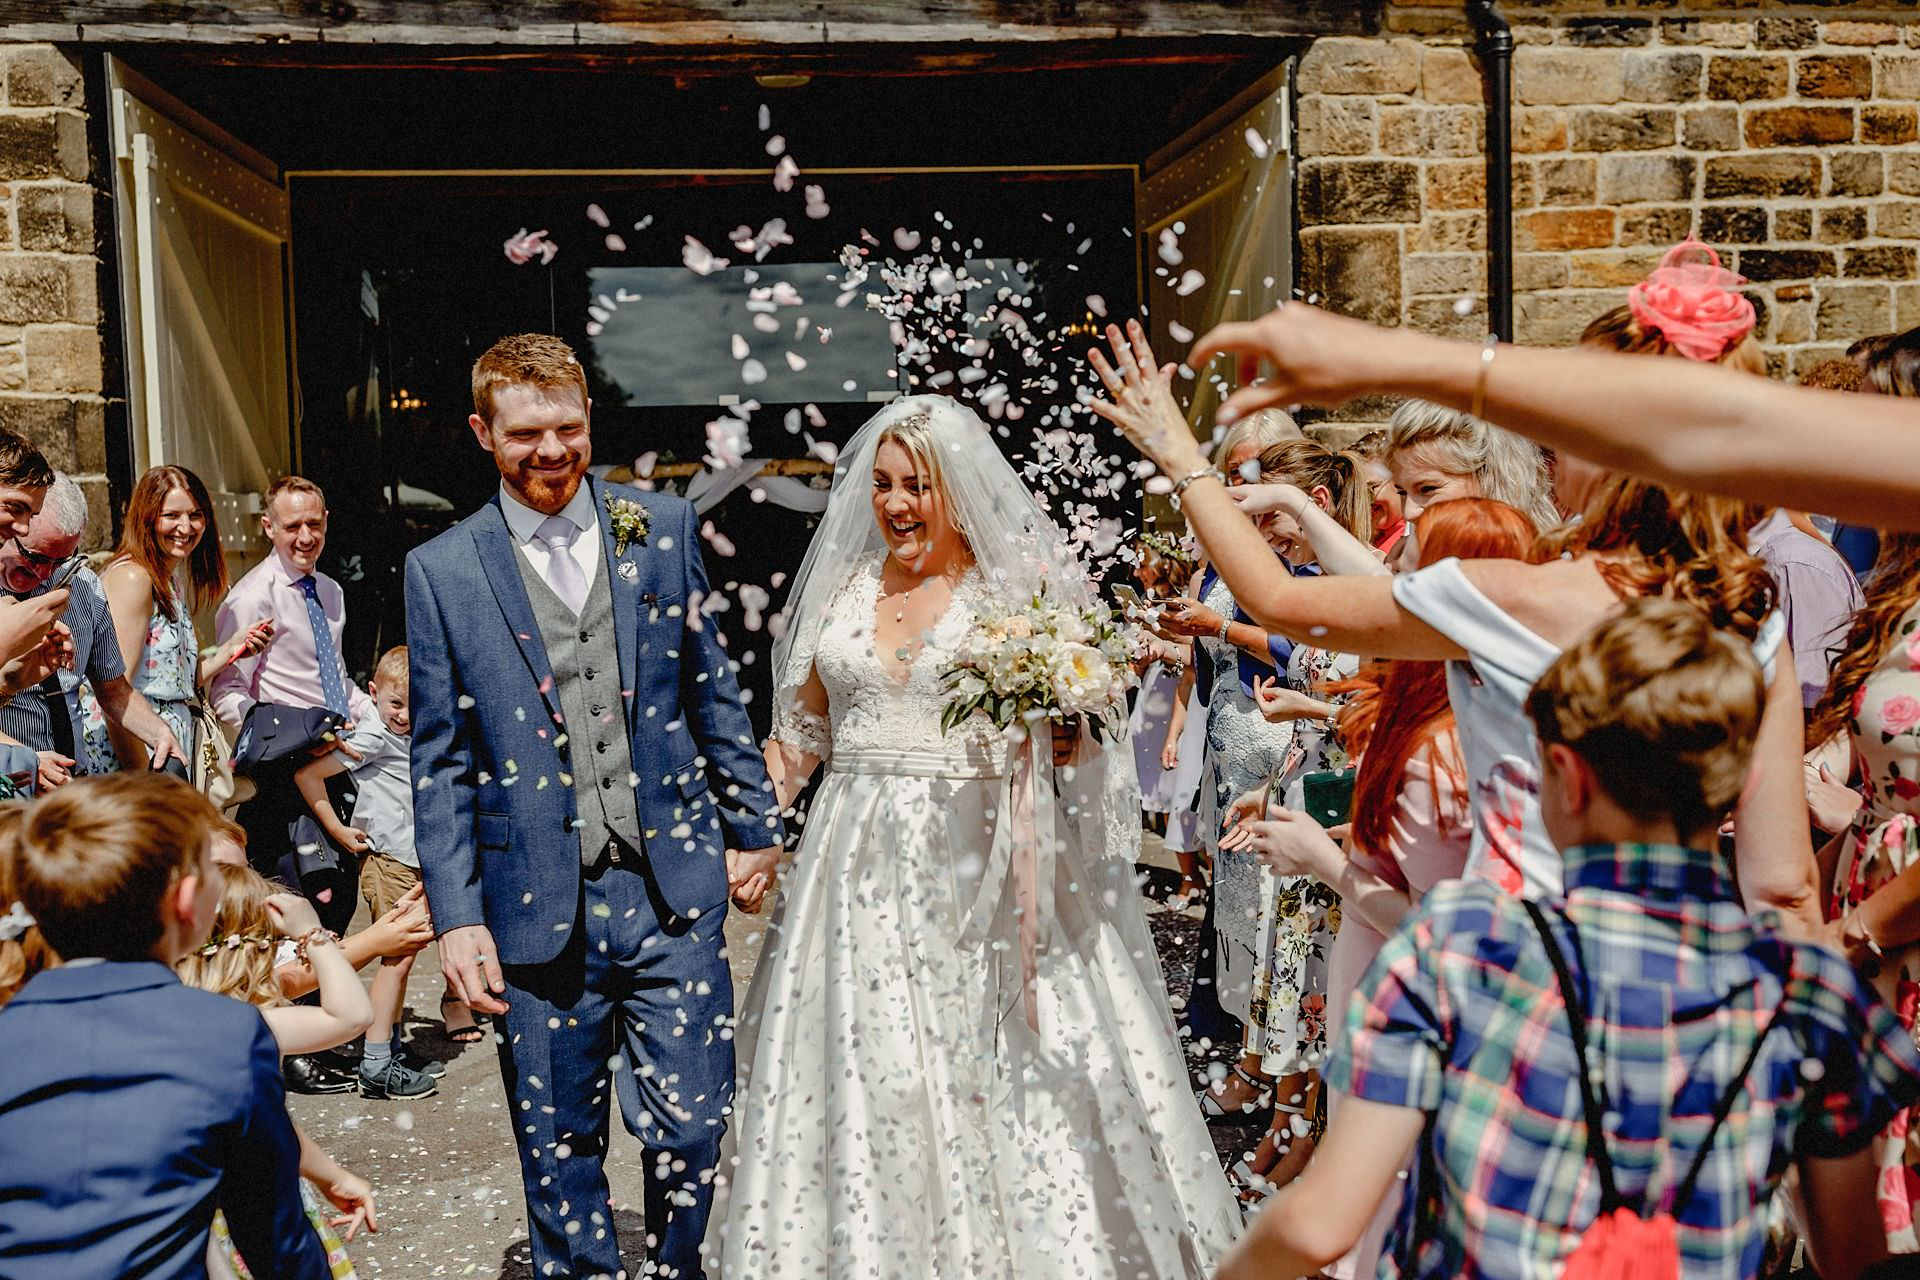 throwing confetti over the married couple